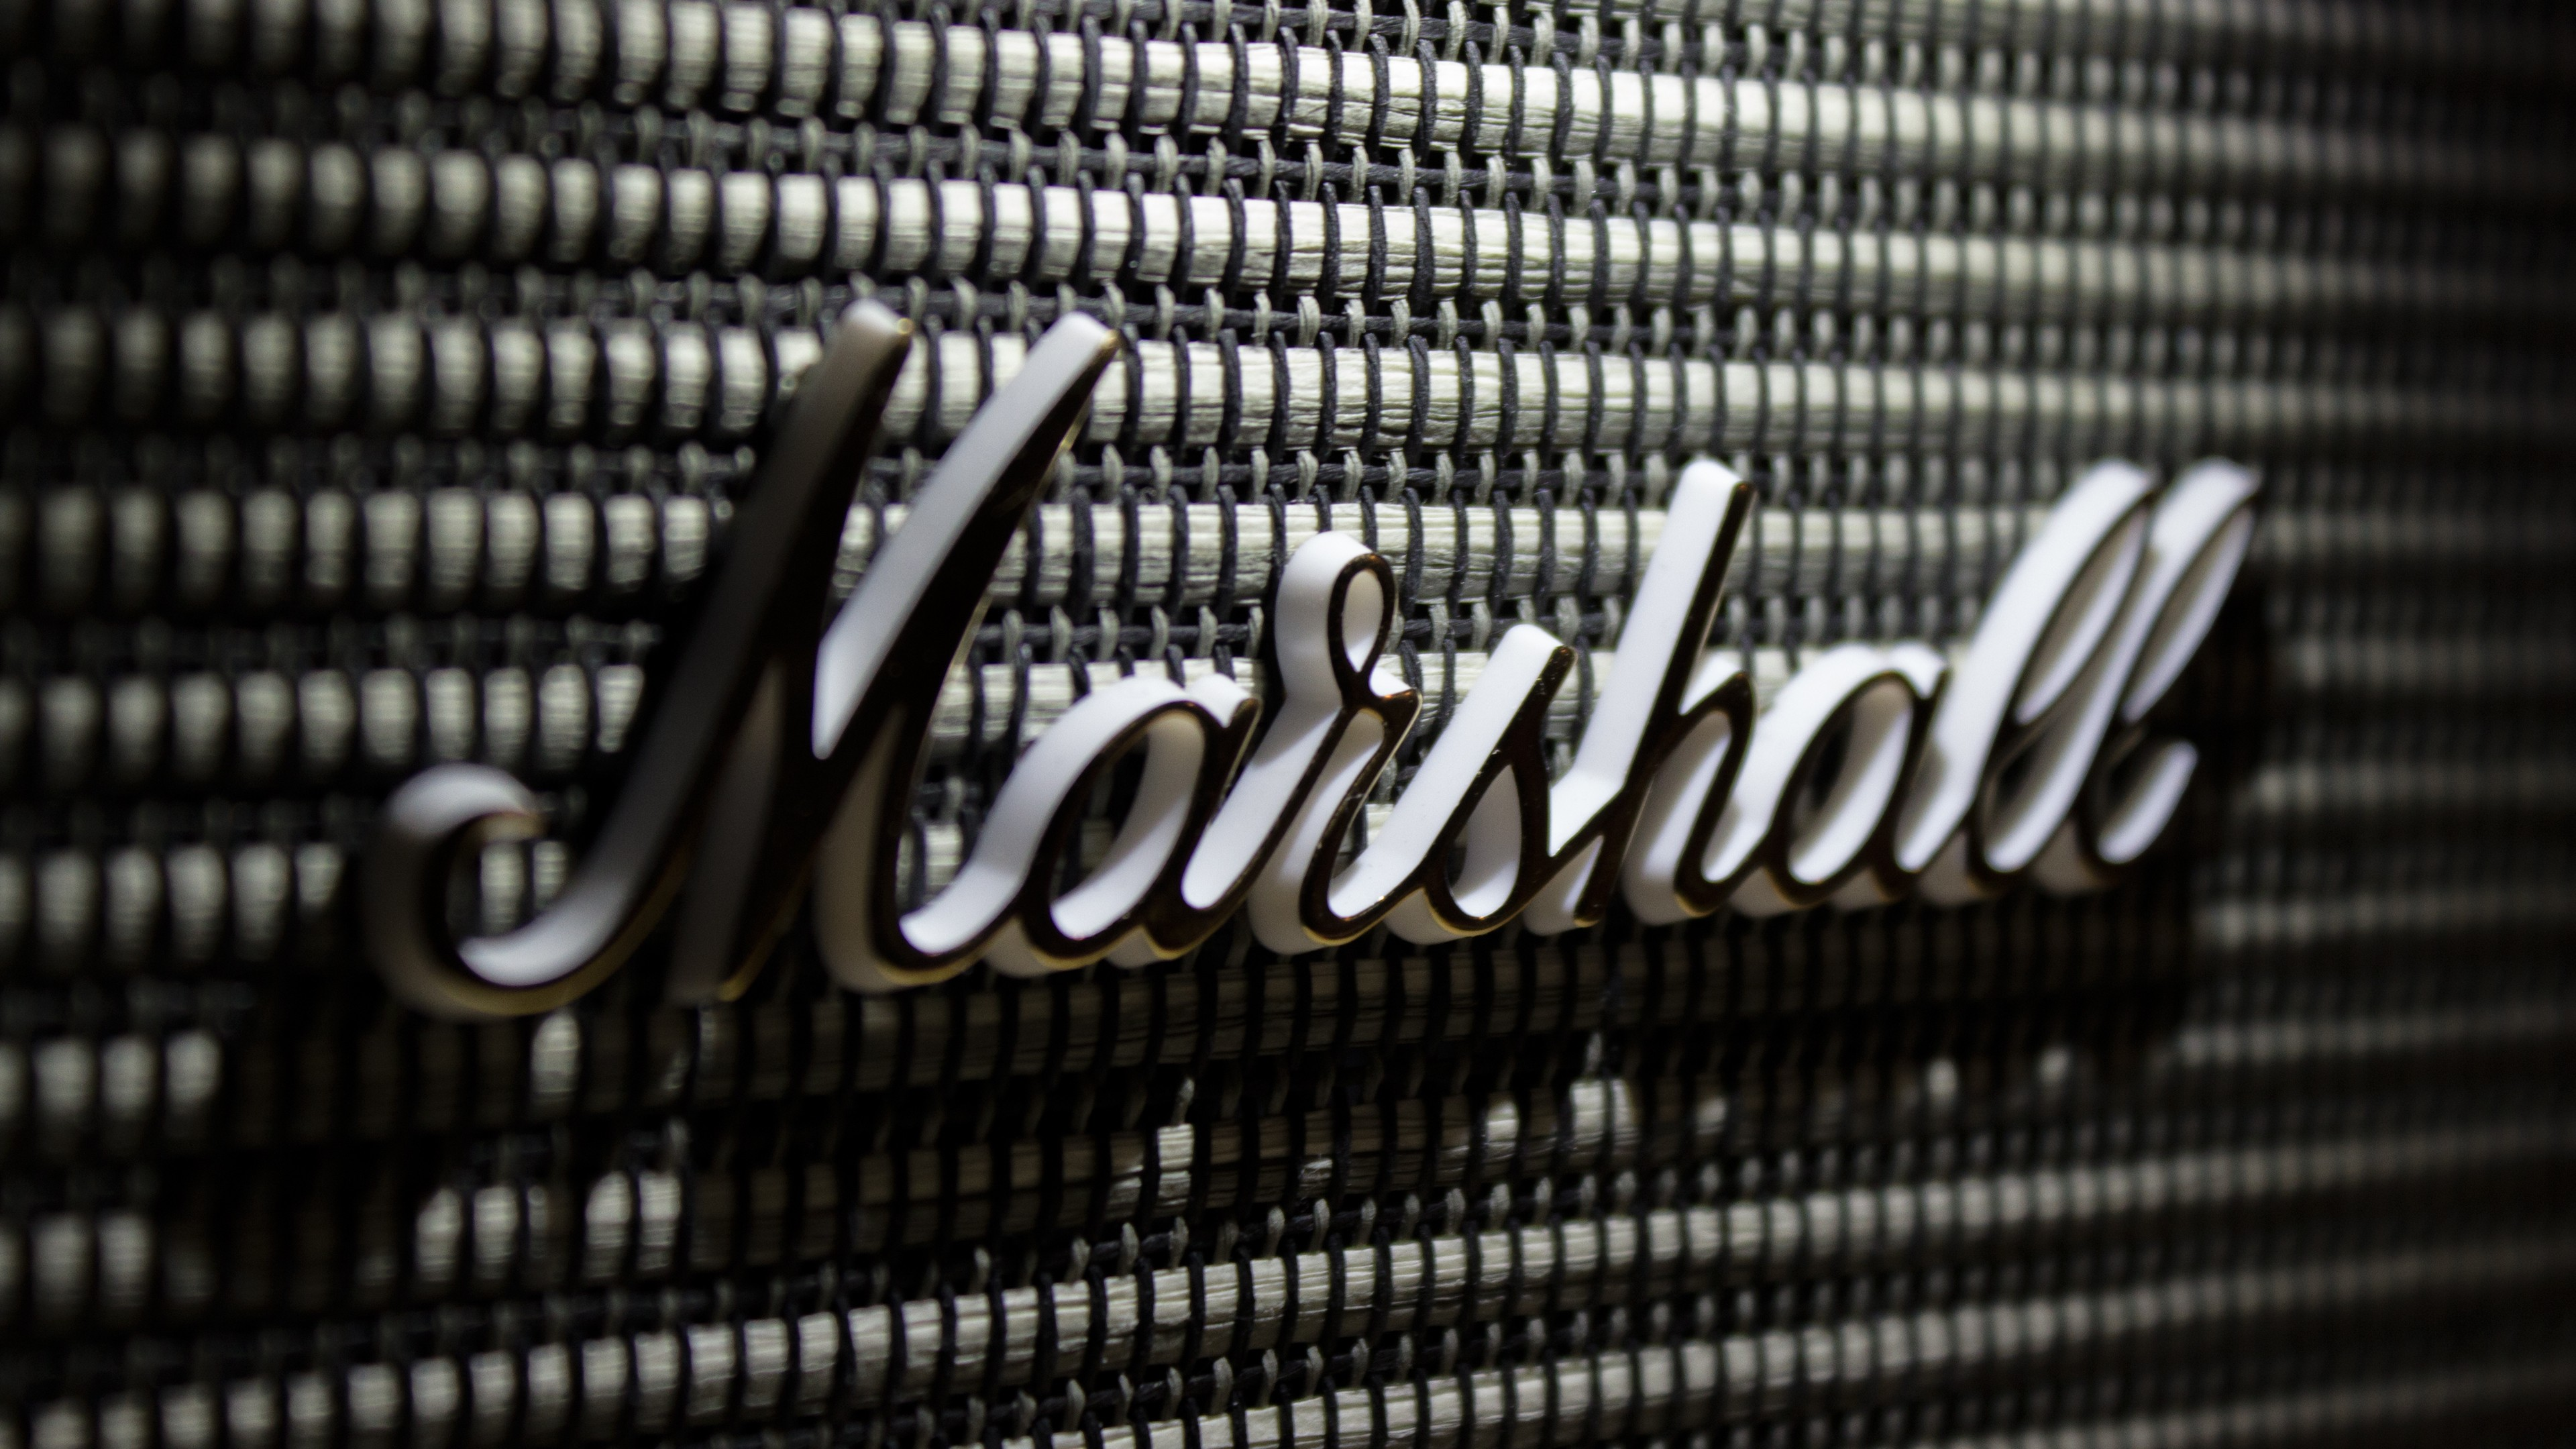 General 3840x2160 Marshall speakers technology